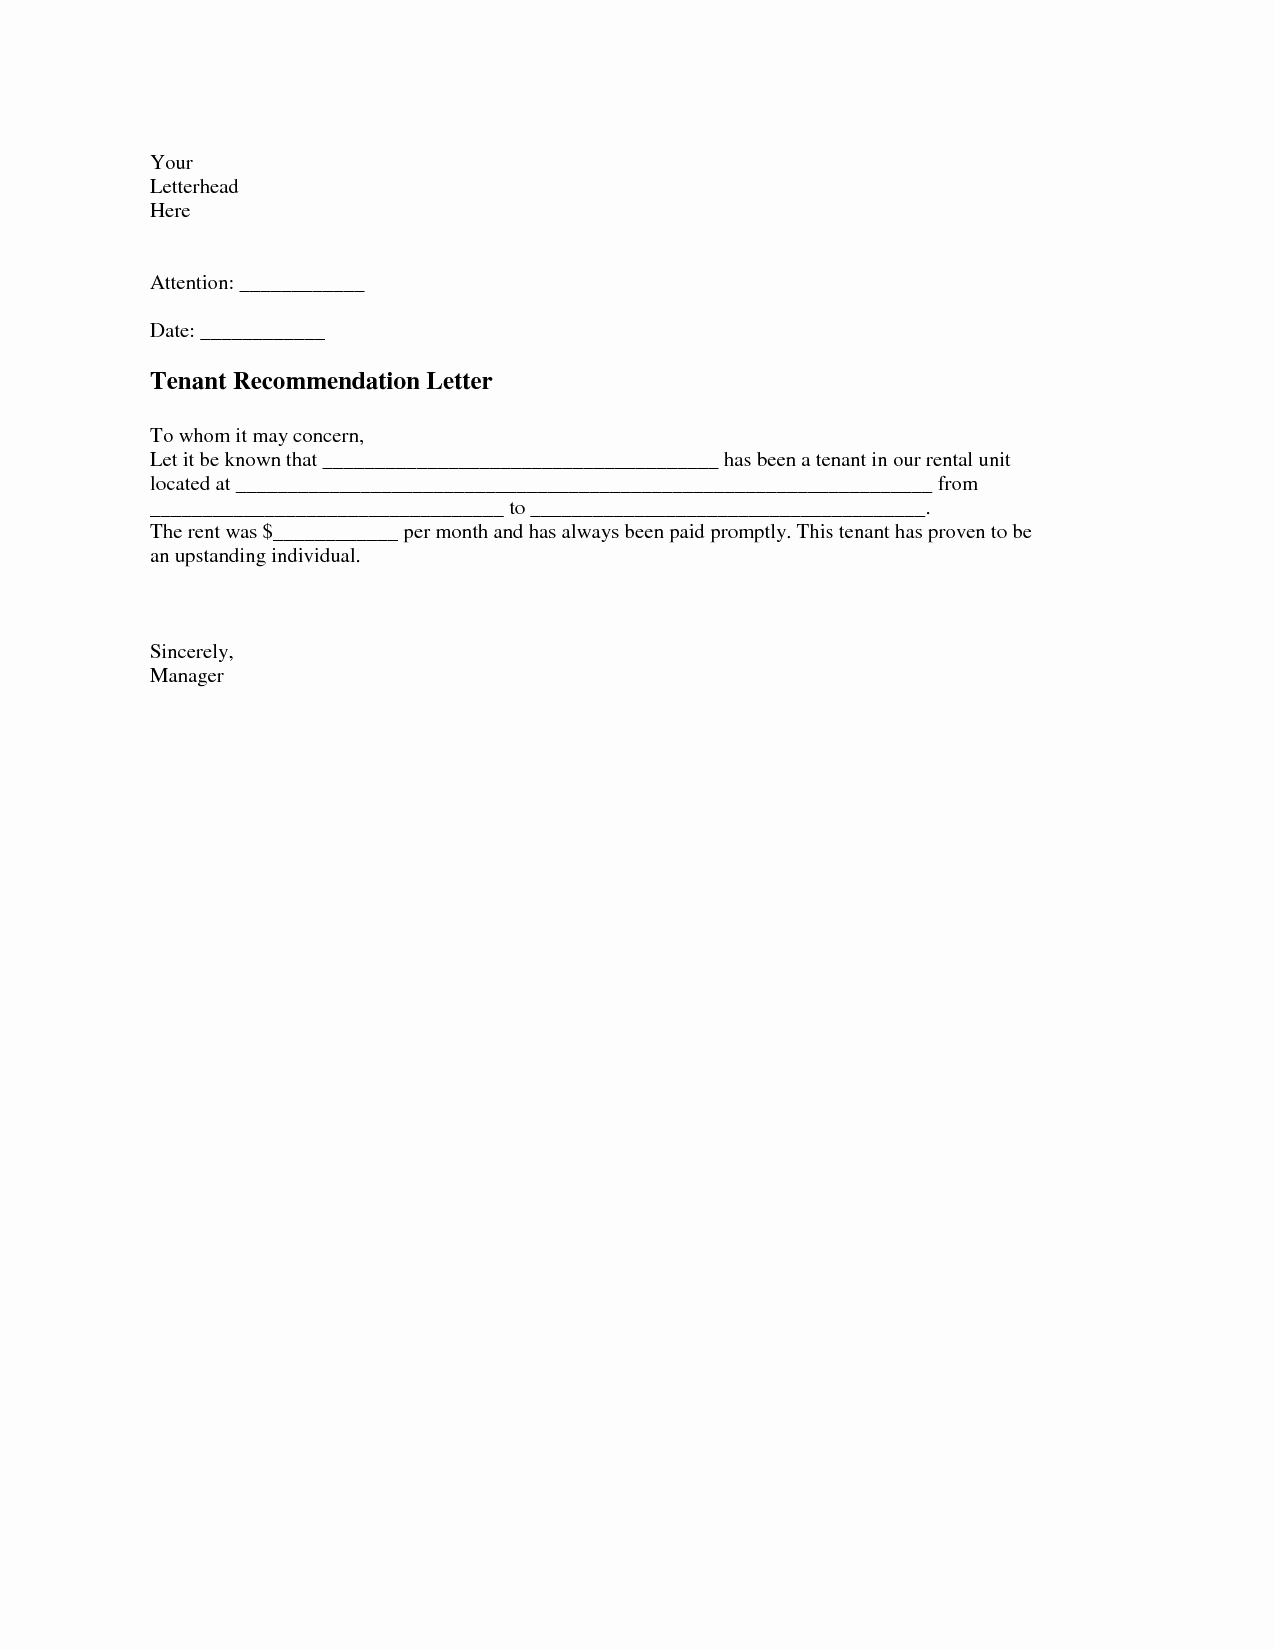 Letter Of Recommendation for Tenant Elegant Tenant Re Mendation Letter A Tenant Re Mendation